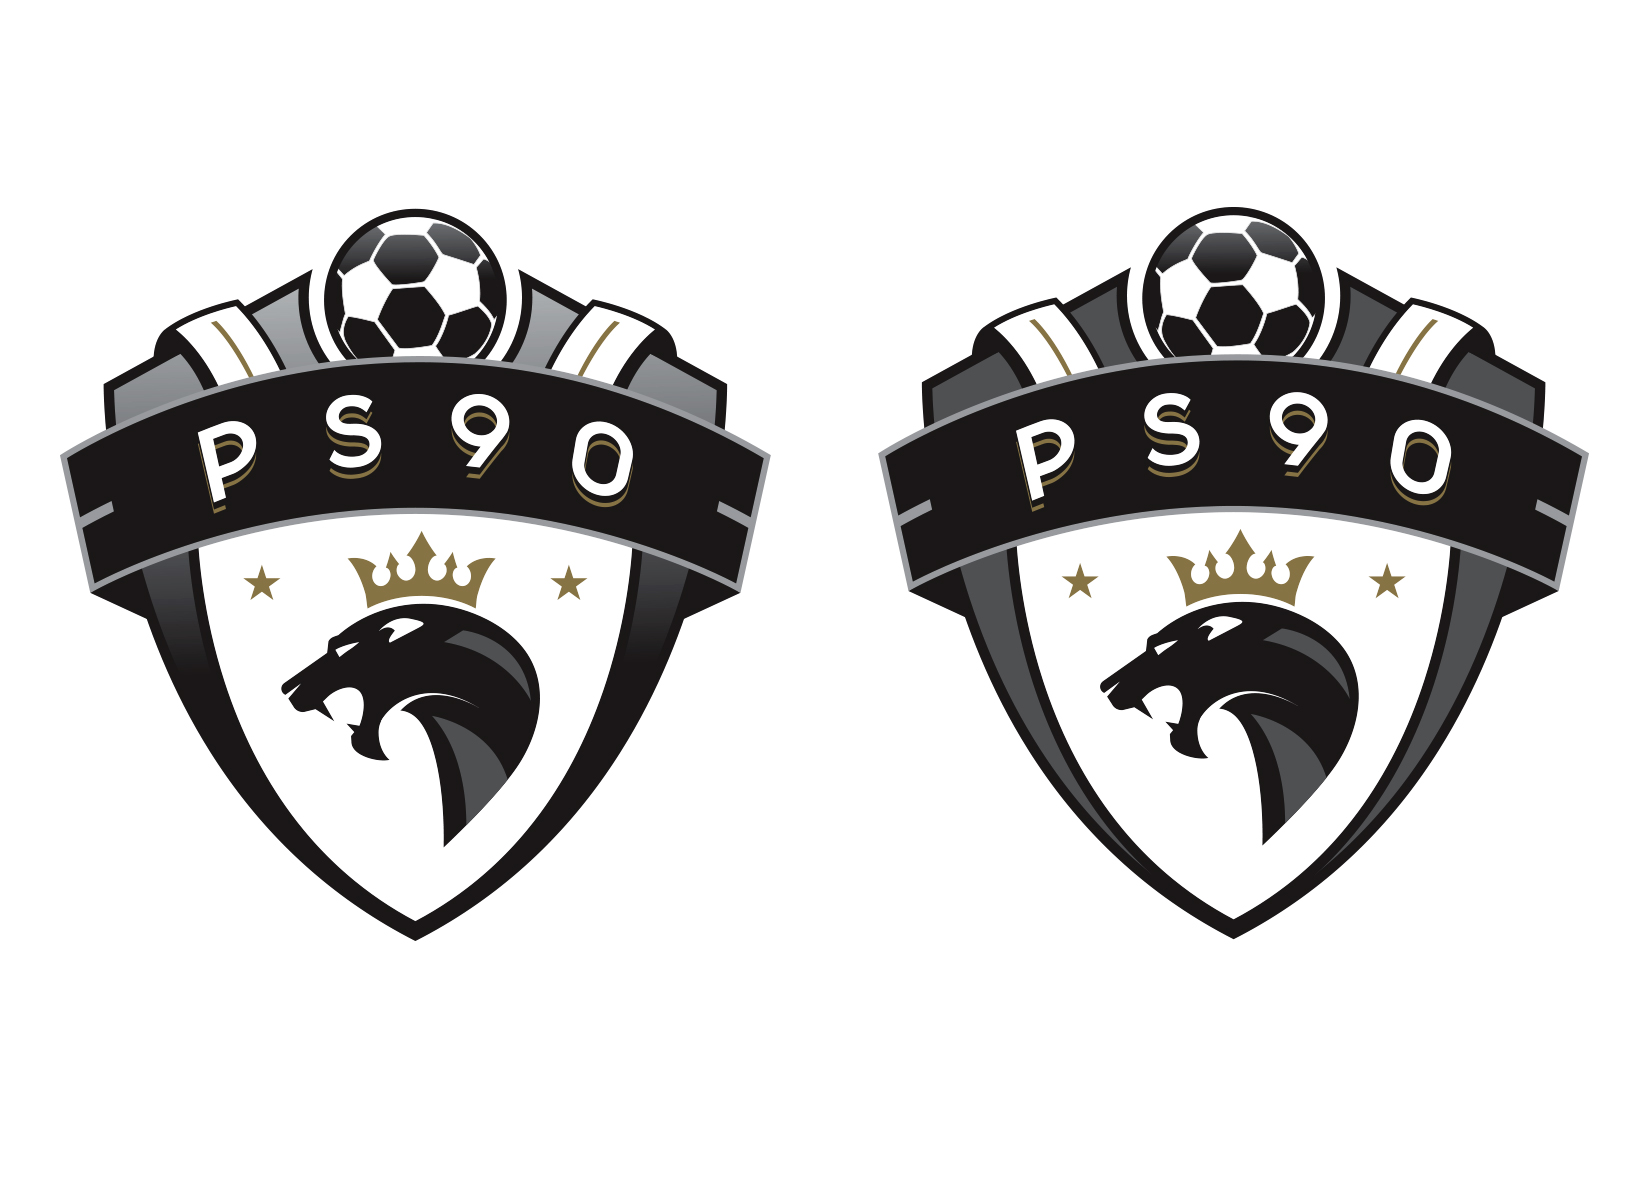 custom-soccer-crest-designs-for-ps90-soccer-3.jpg